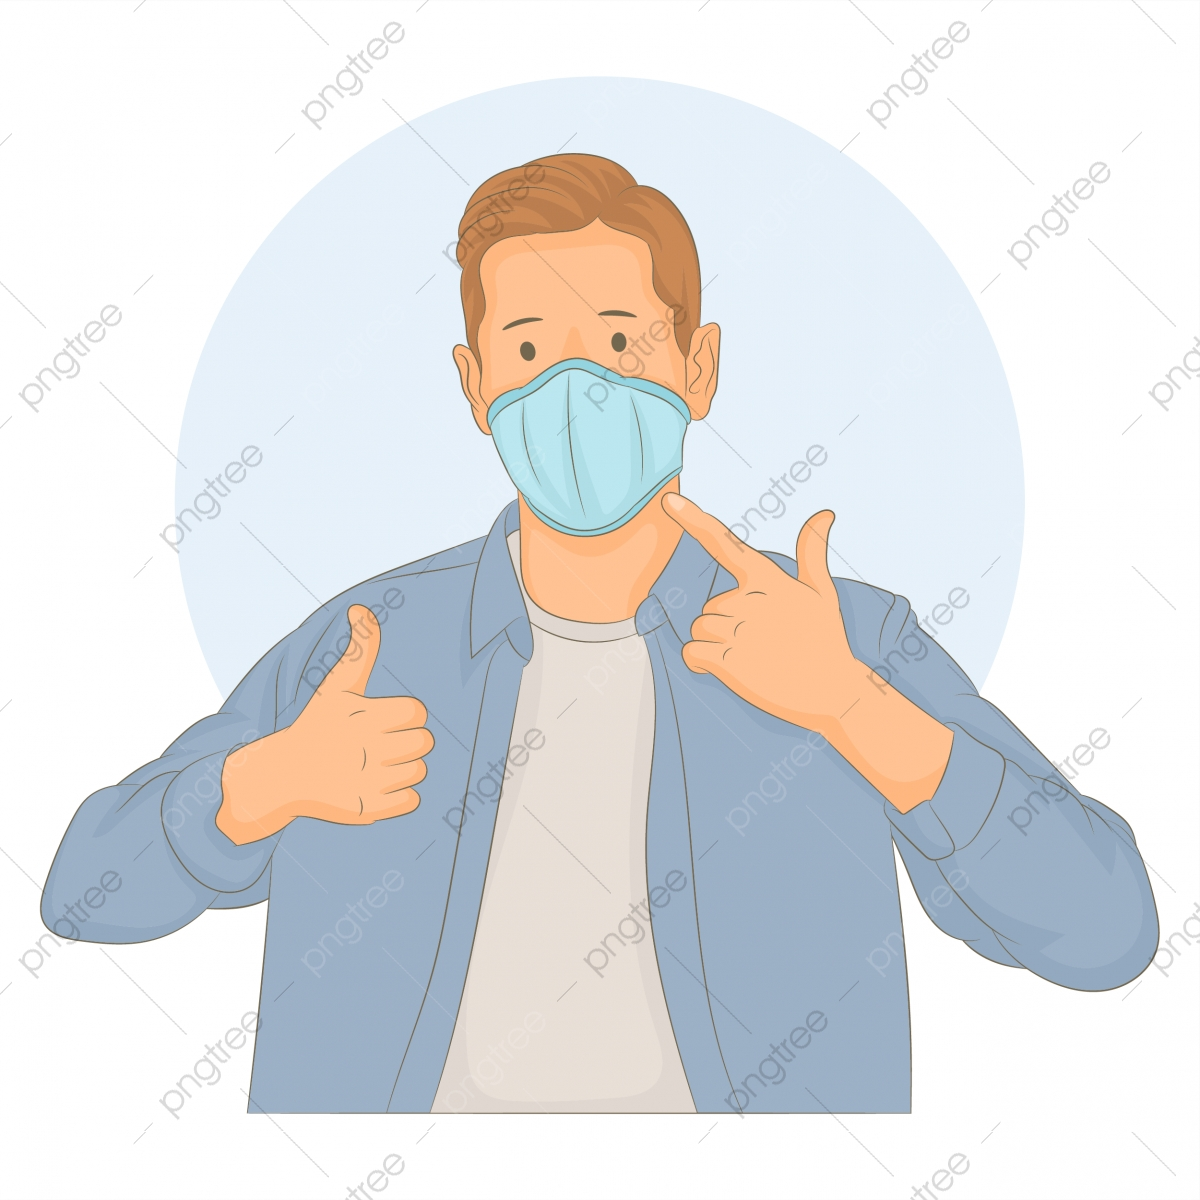 thumb png images vector and psd files free download on pngtree https pngtree com freepng man wearing medical mask on face and make sign thumb up 5341437 html